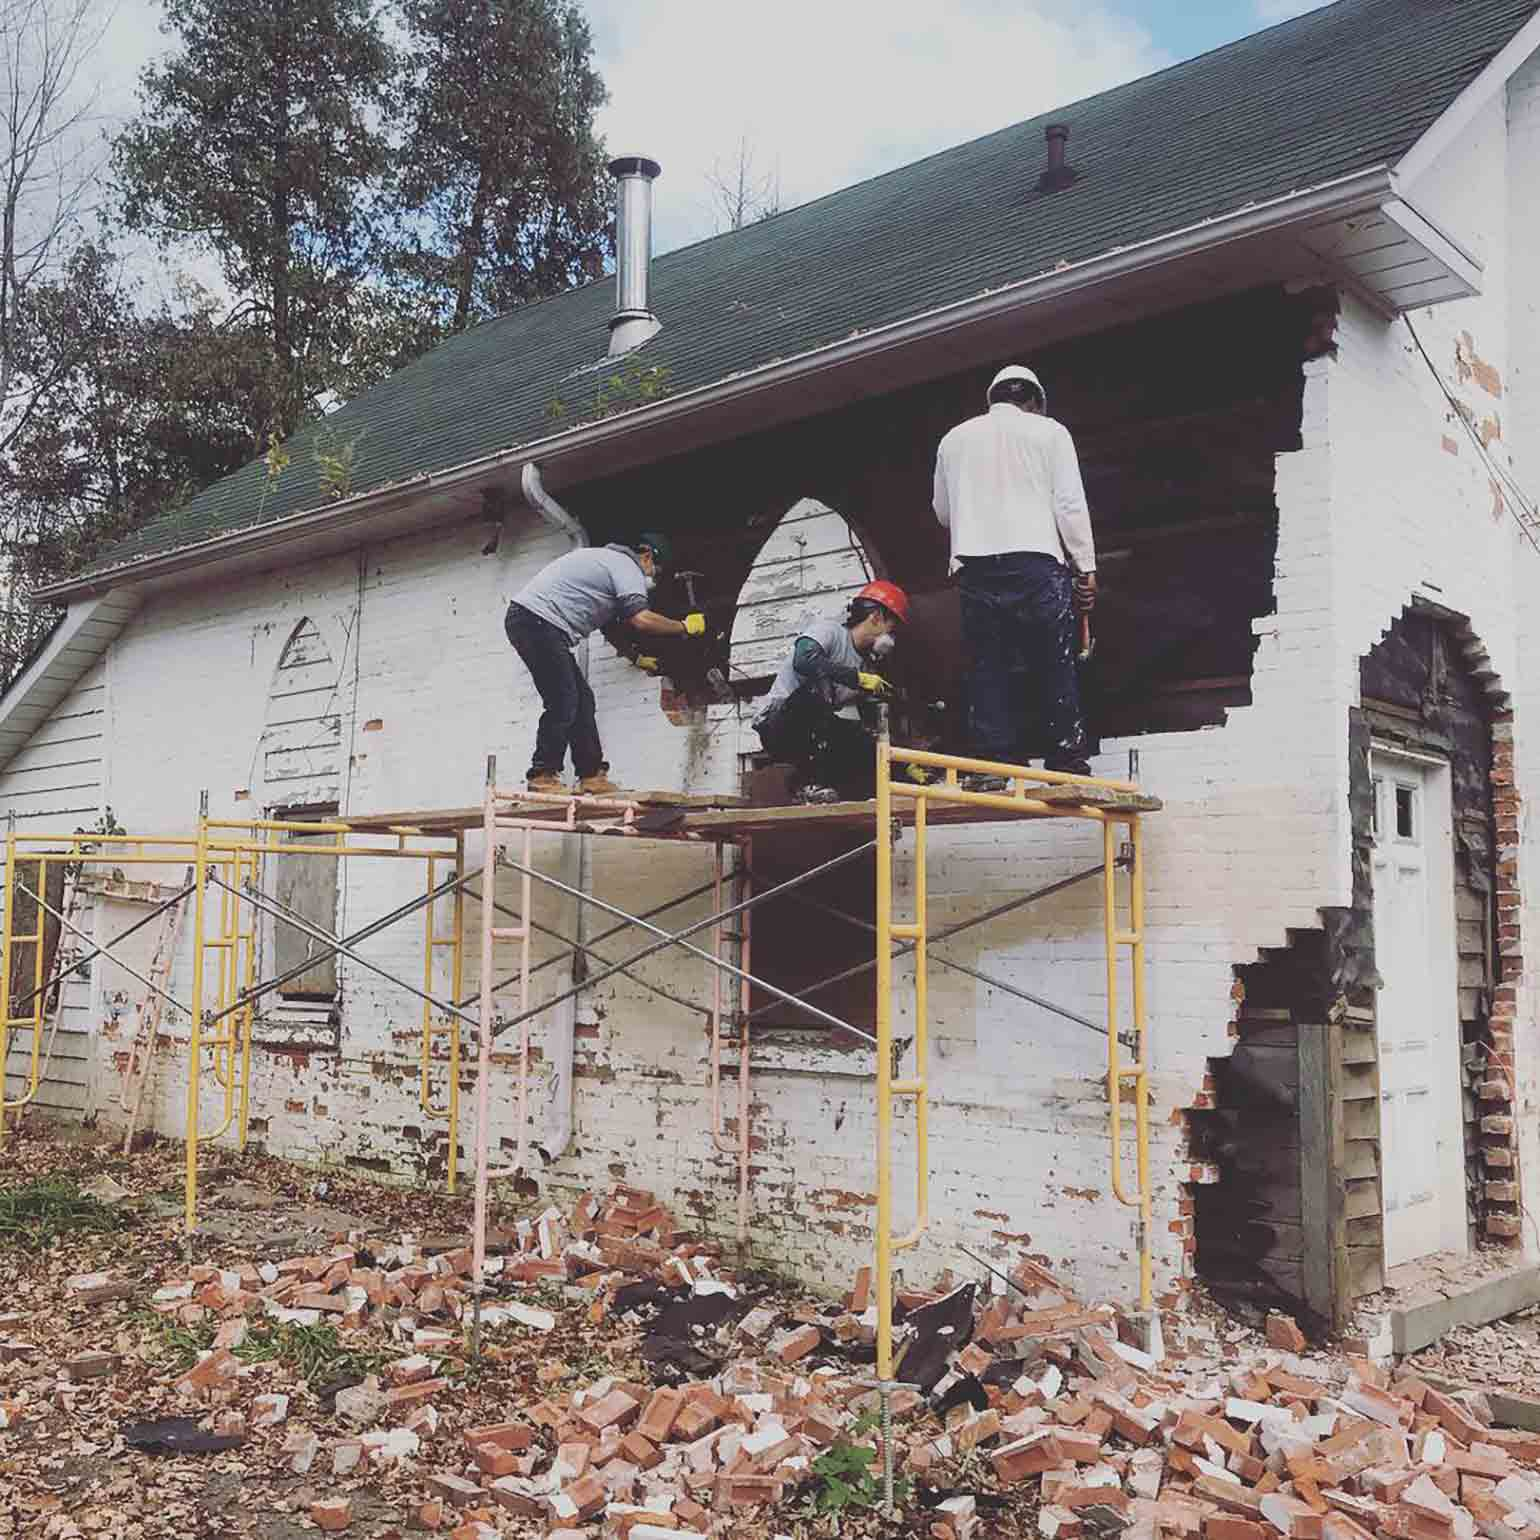 Three workers help demolish a white brick wall for a home renovation to help the homeless.